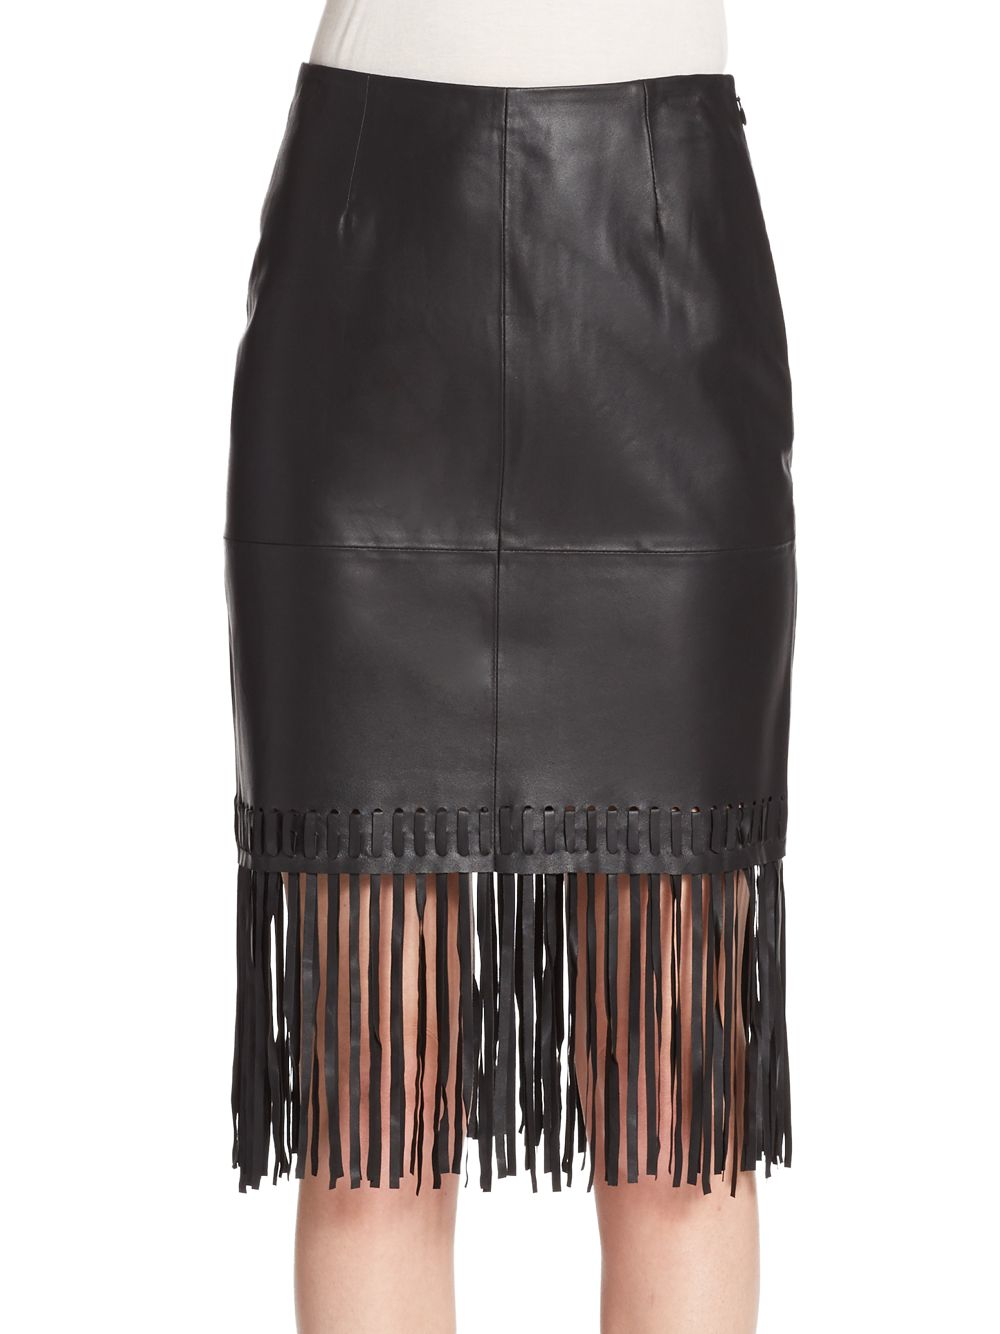 We started with a classic skirt silhouette and made it more fabulous with the swingy style of on-trend fringe. Pull-on styling with elastic waistband. Crafted with a hint of stretch for a smooth fit. Length: 21